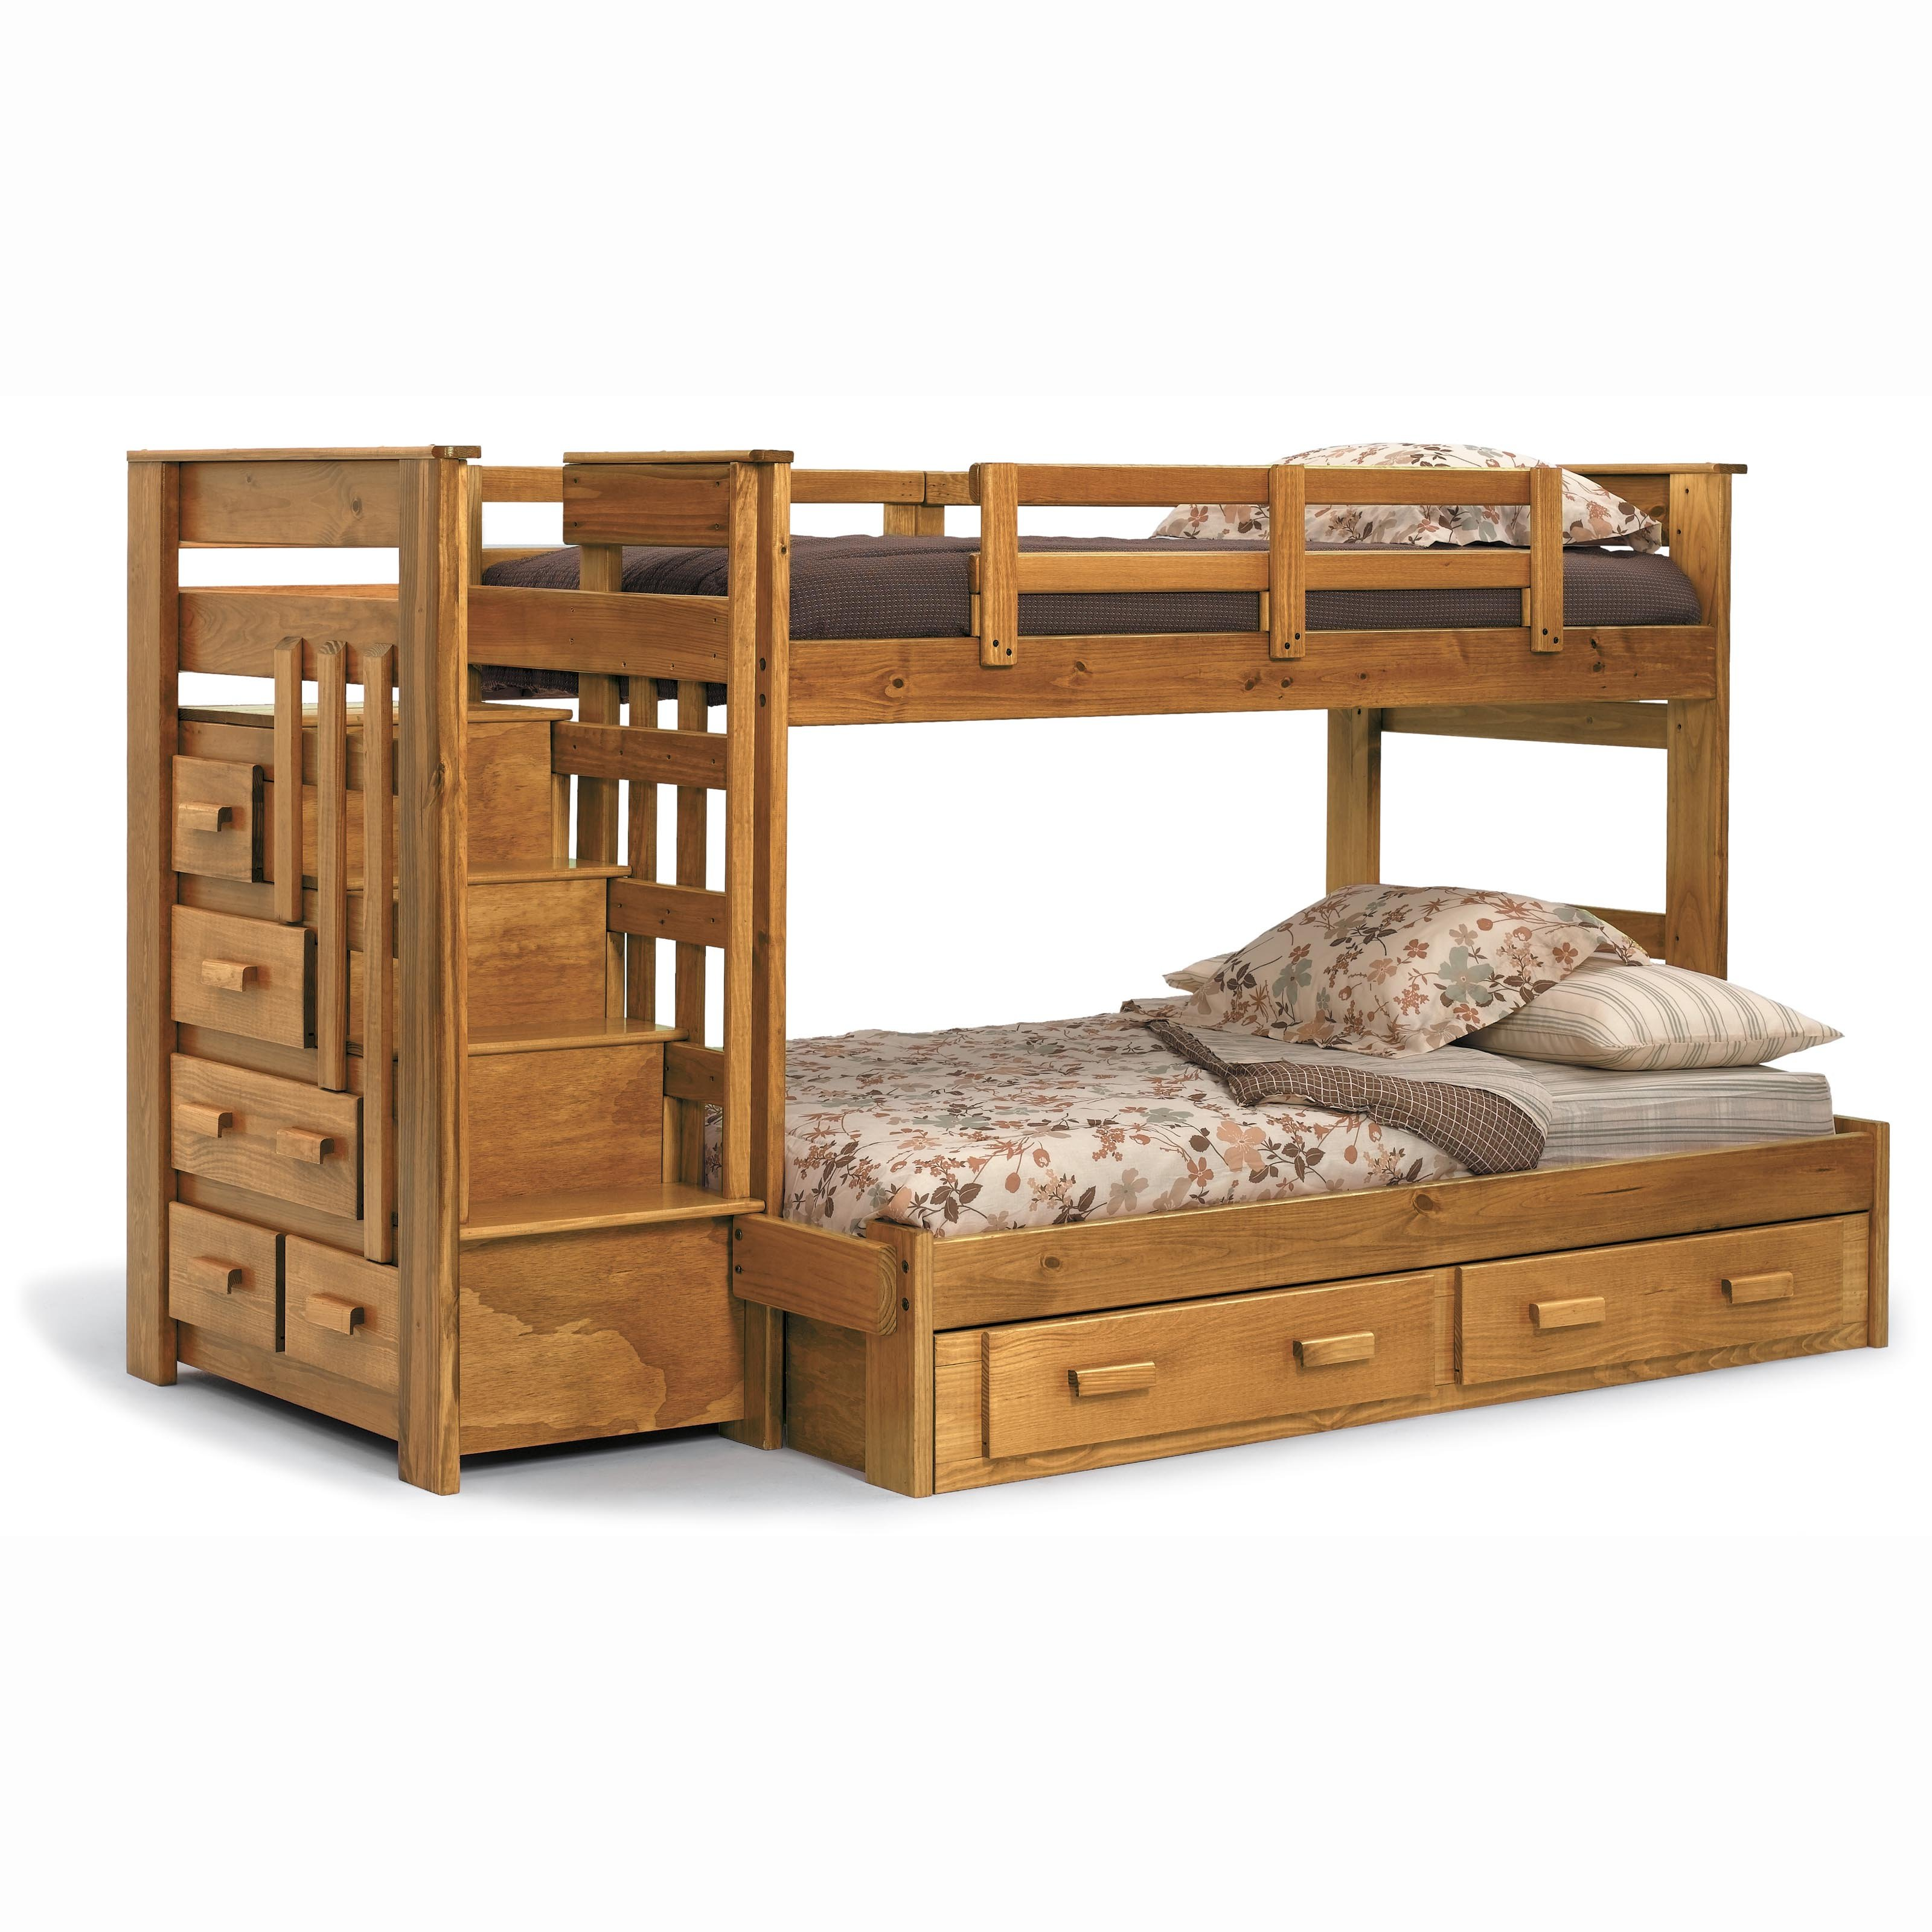 Plans for twin over queen bunk bed quick woodworking for Bunk bed woodworking plans